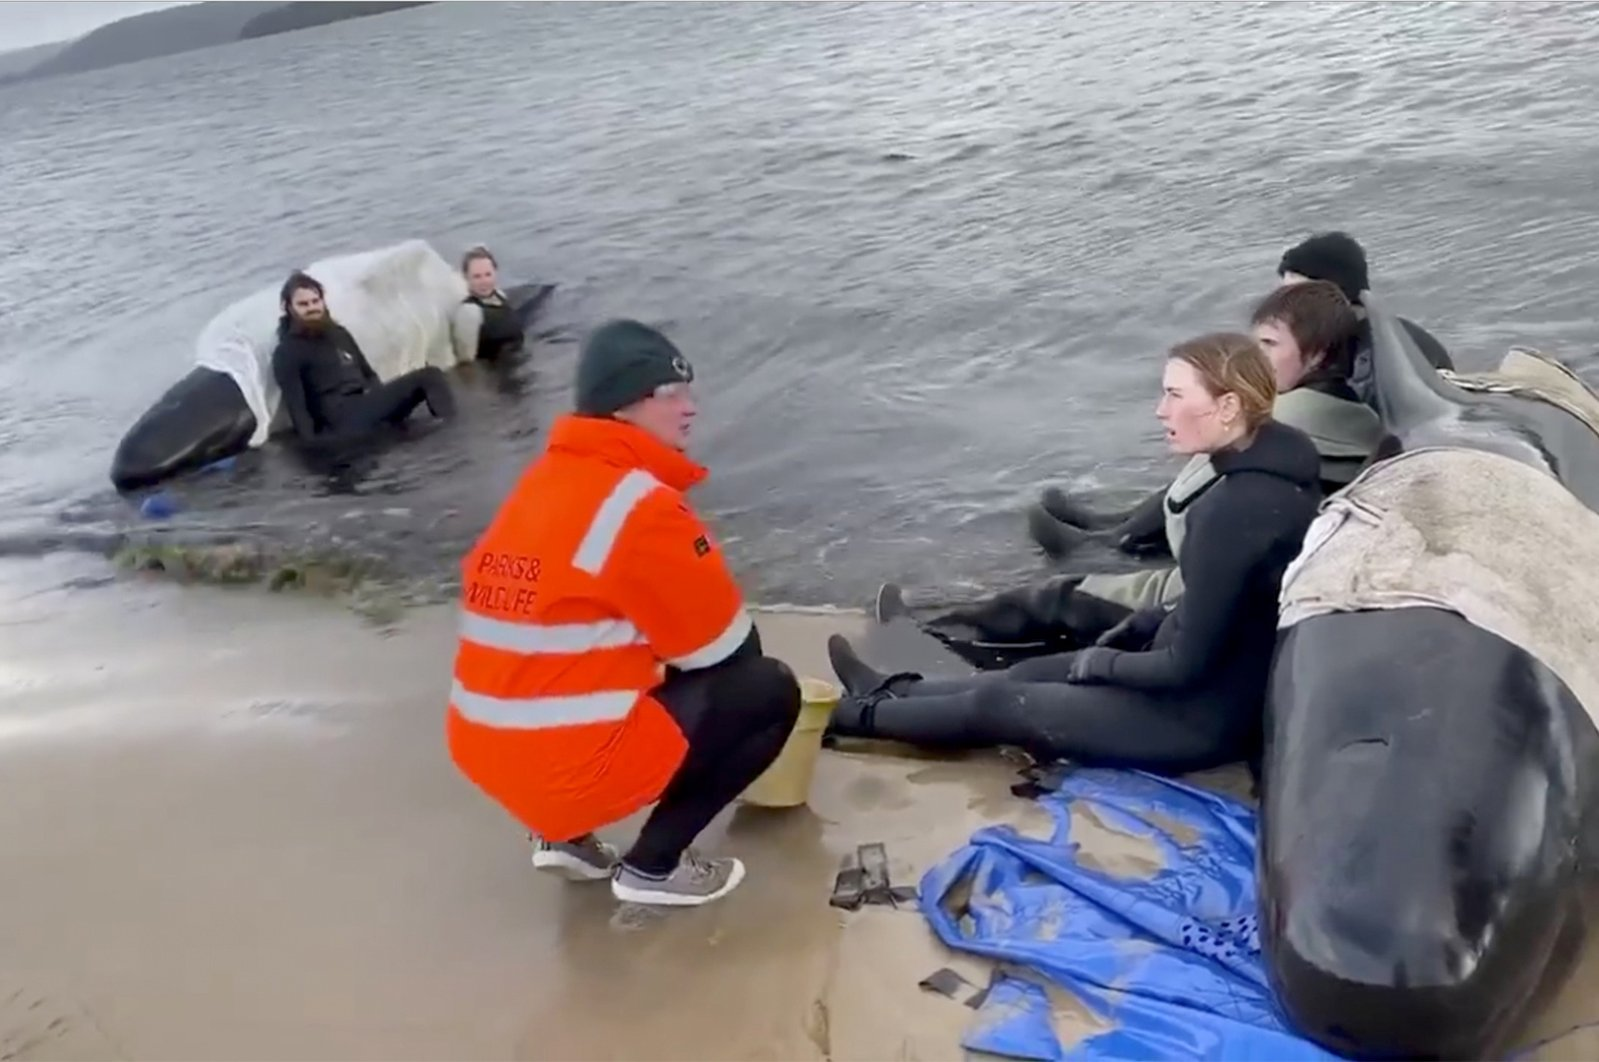 Whale rescue efforts take place at Macquarie Heads in Tasmania, Australia, Sept. 23, 2020, in this still picture obtained from social media video. (Reuters Photo)